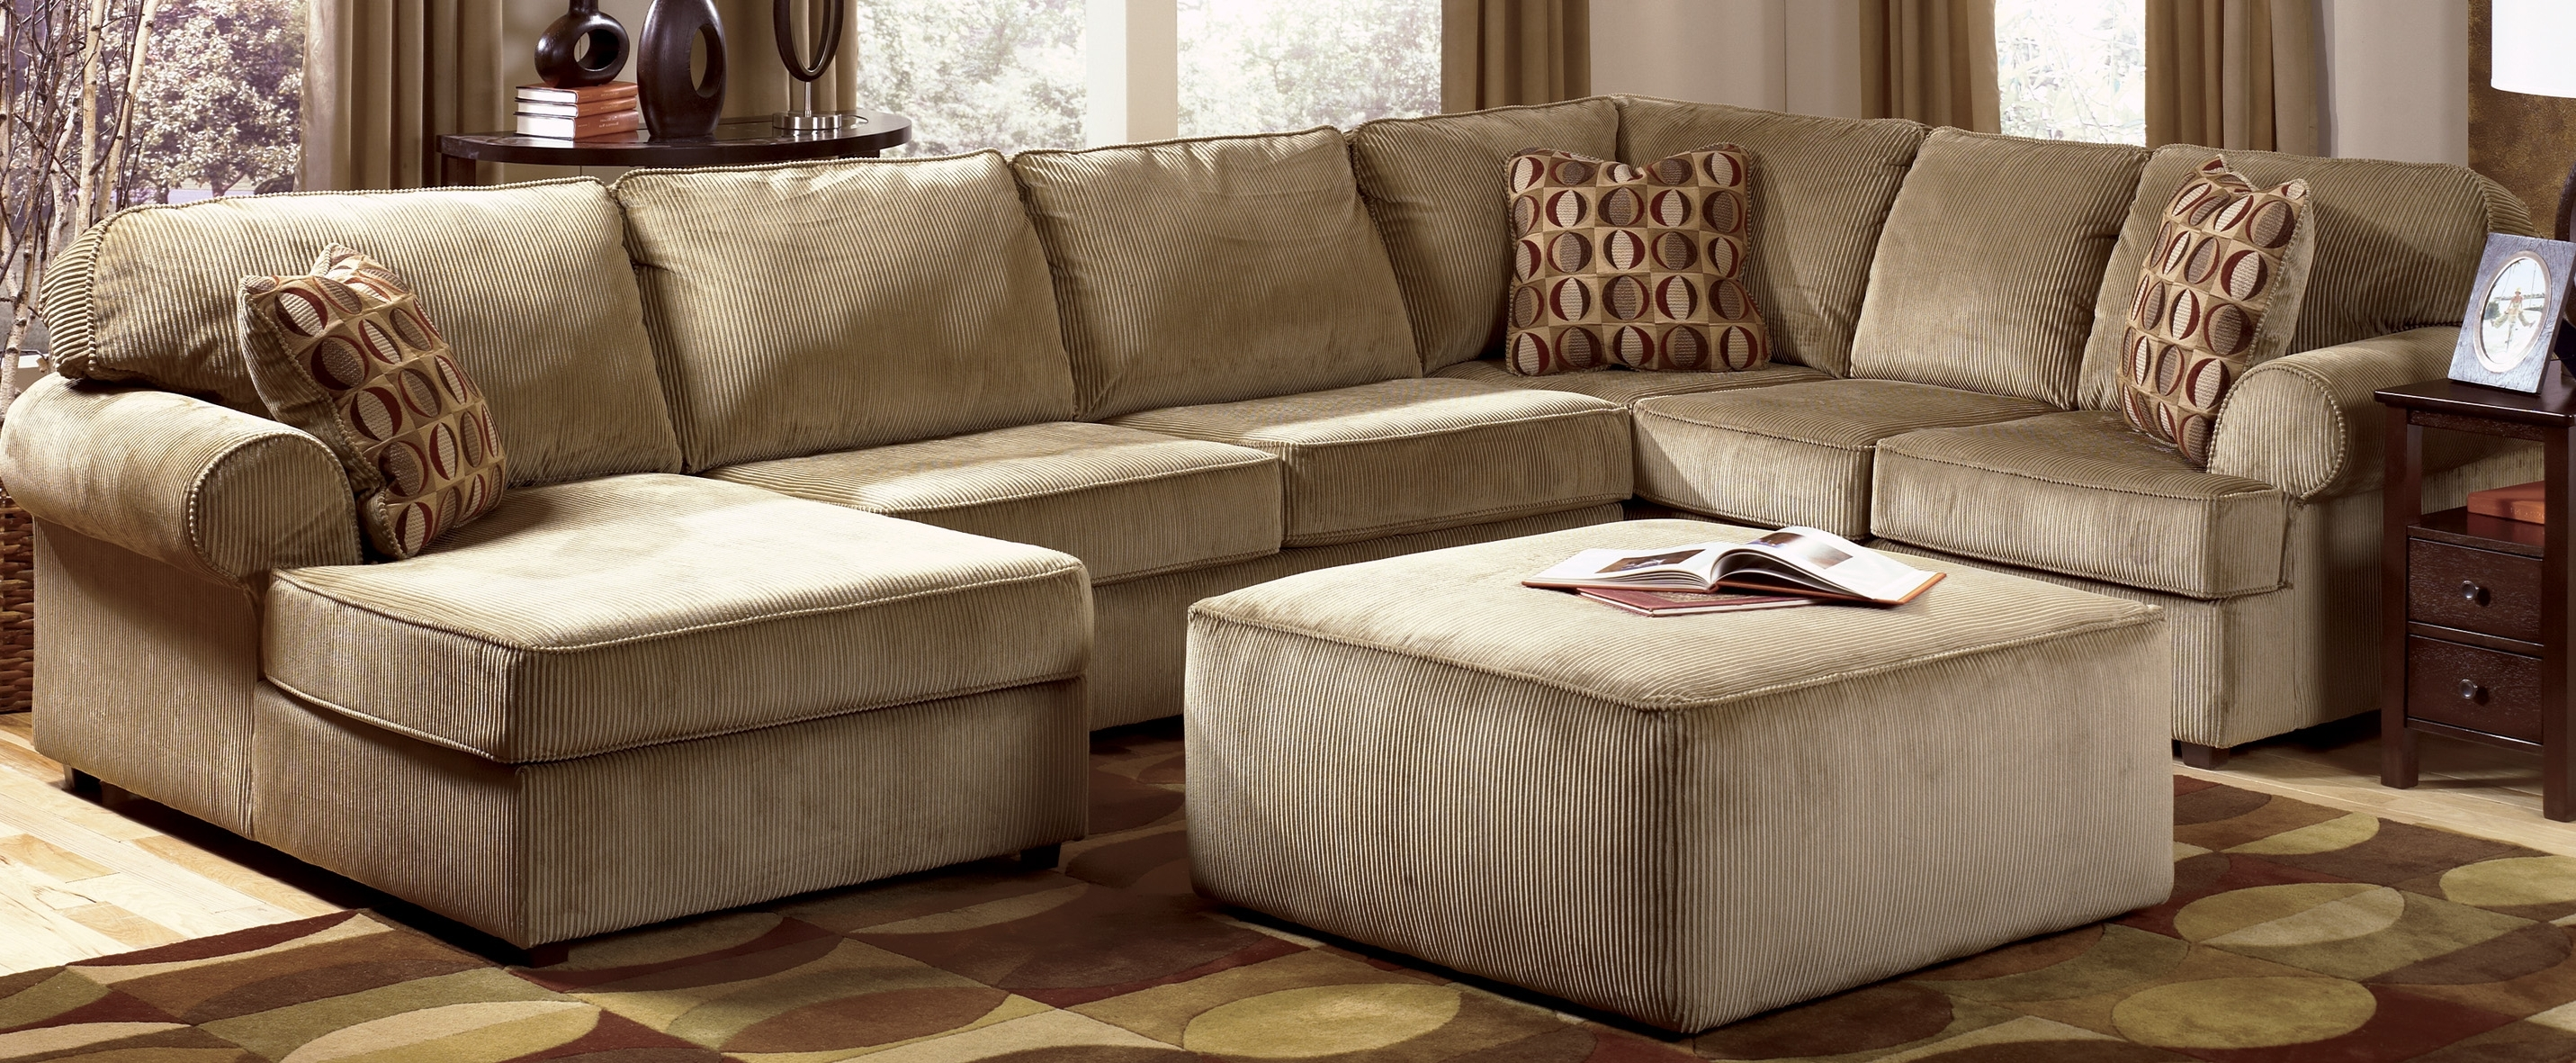 Sectional Sofa Design: Cheap Sofa Sectionals Brilliant Ideas Pertaining To Well Known Sectionals With Chaise And Ottoman (View 8 of 20)